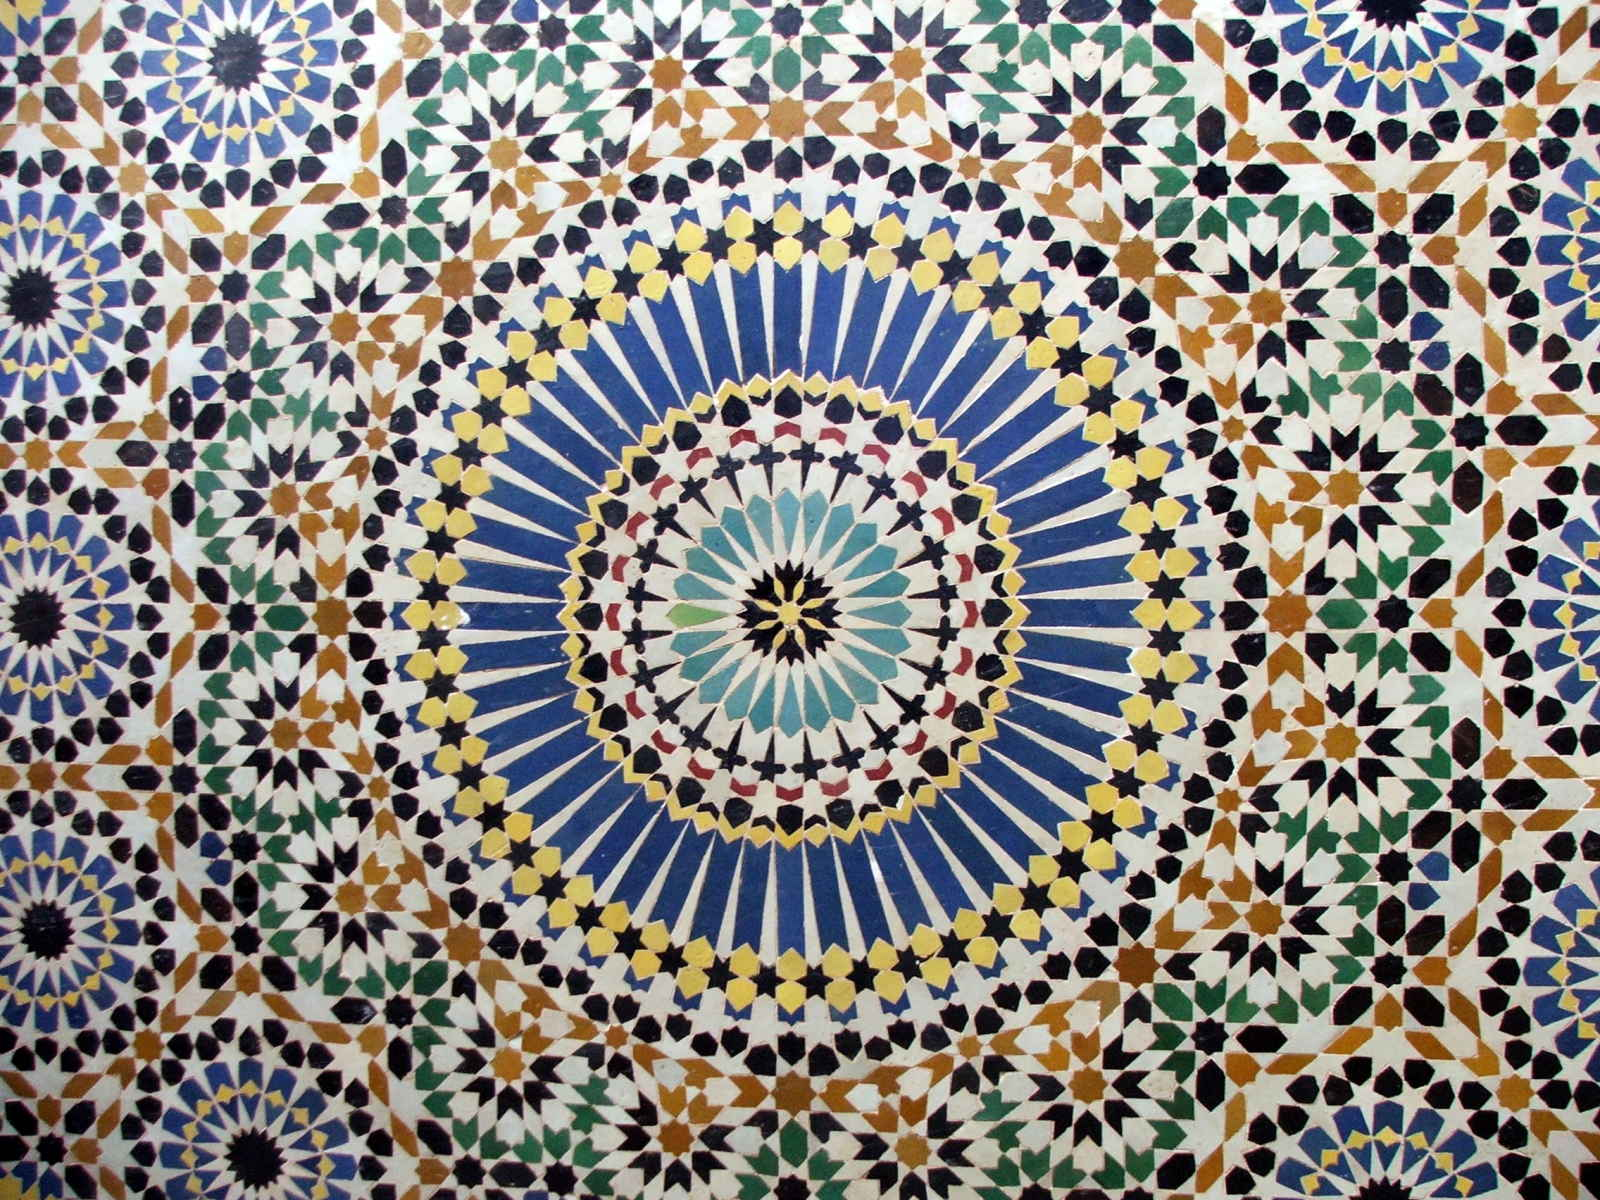 Study The Significance Of Stars In Islamic Art Stars In Symmetry